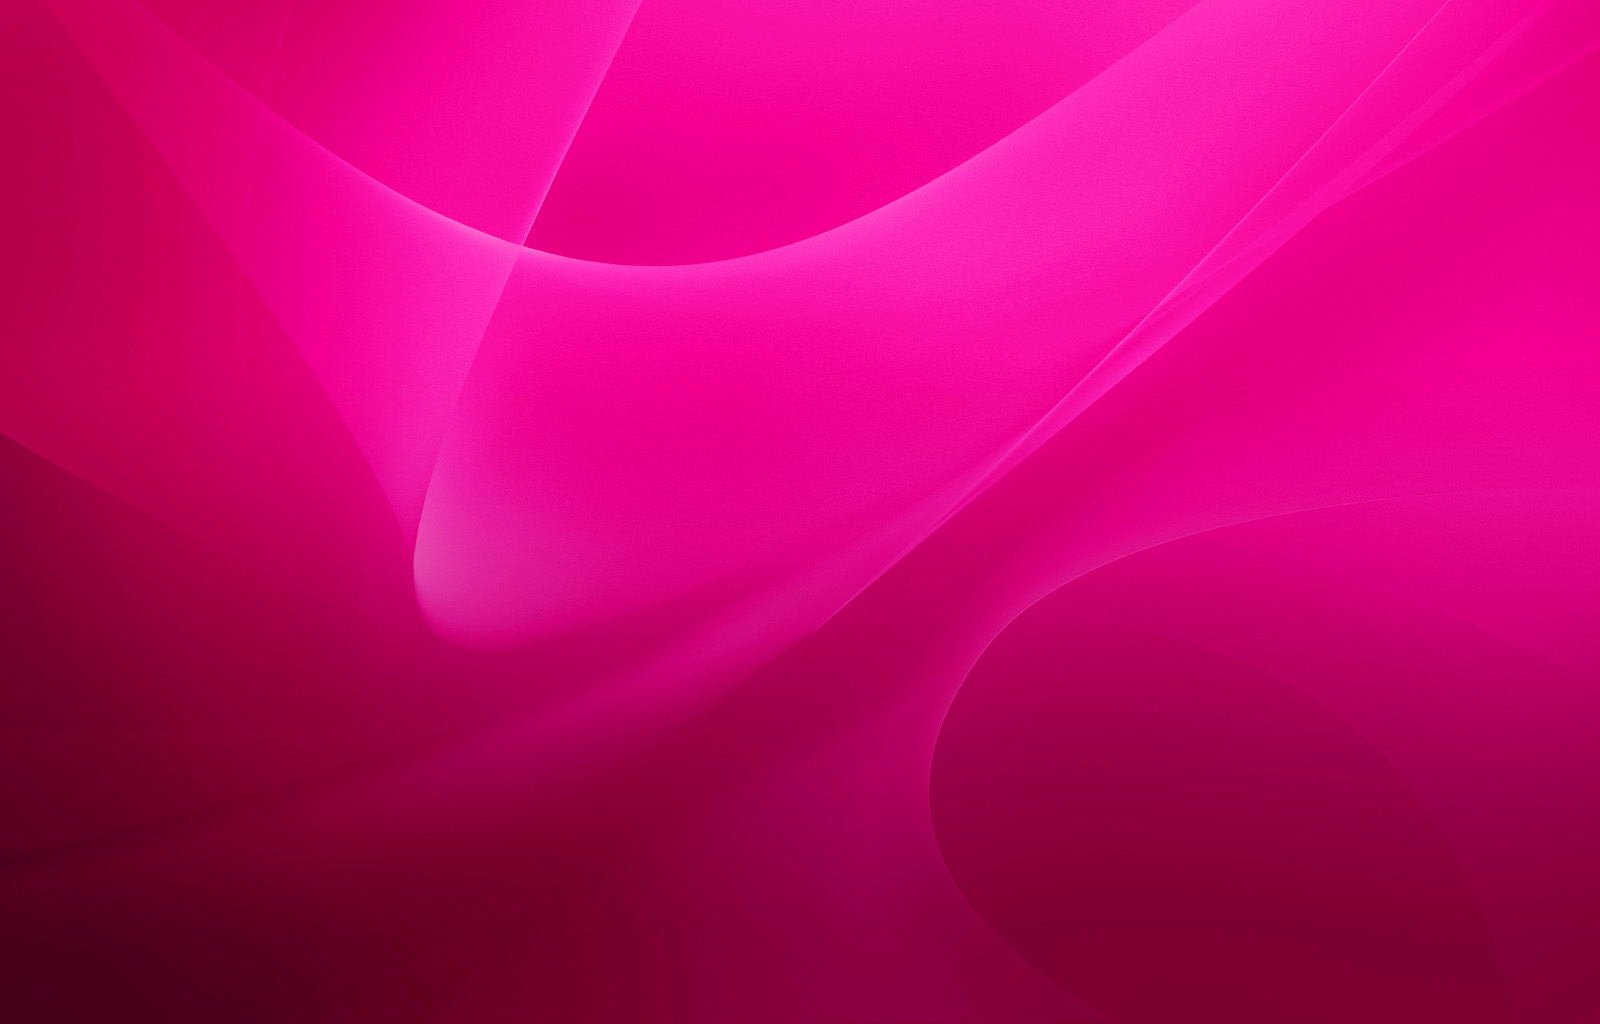 plain pink wallpaper